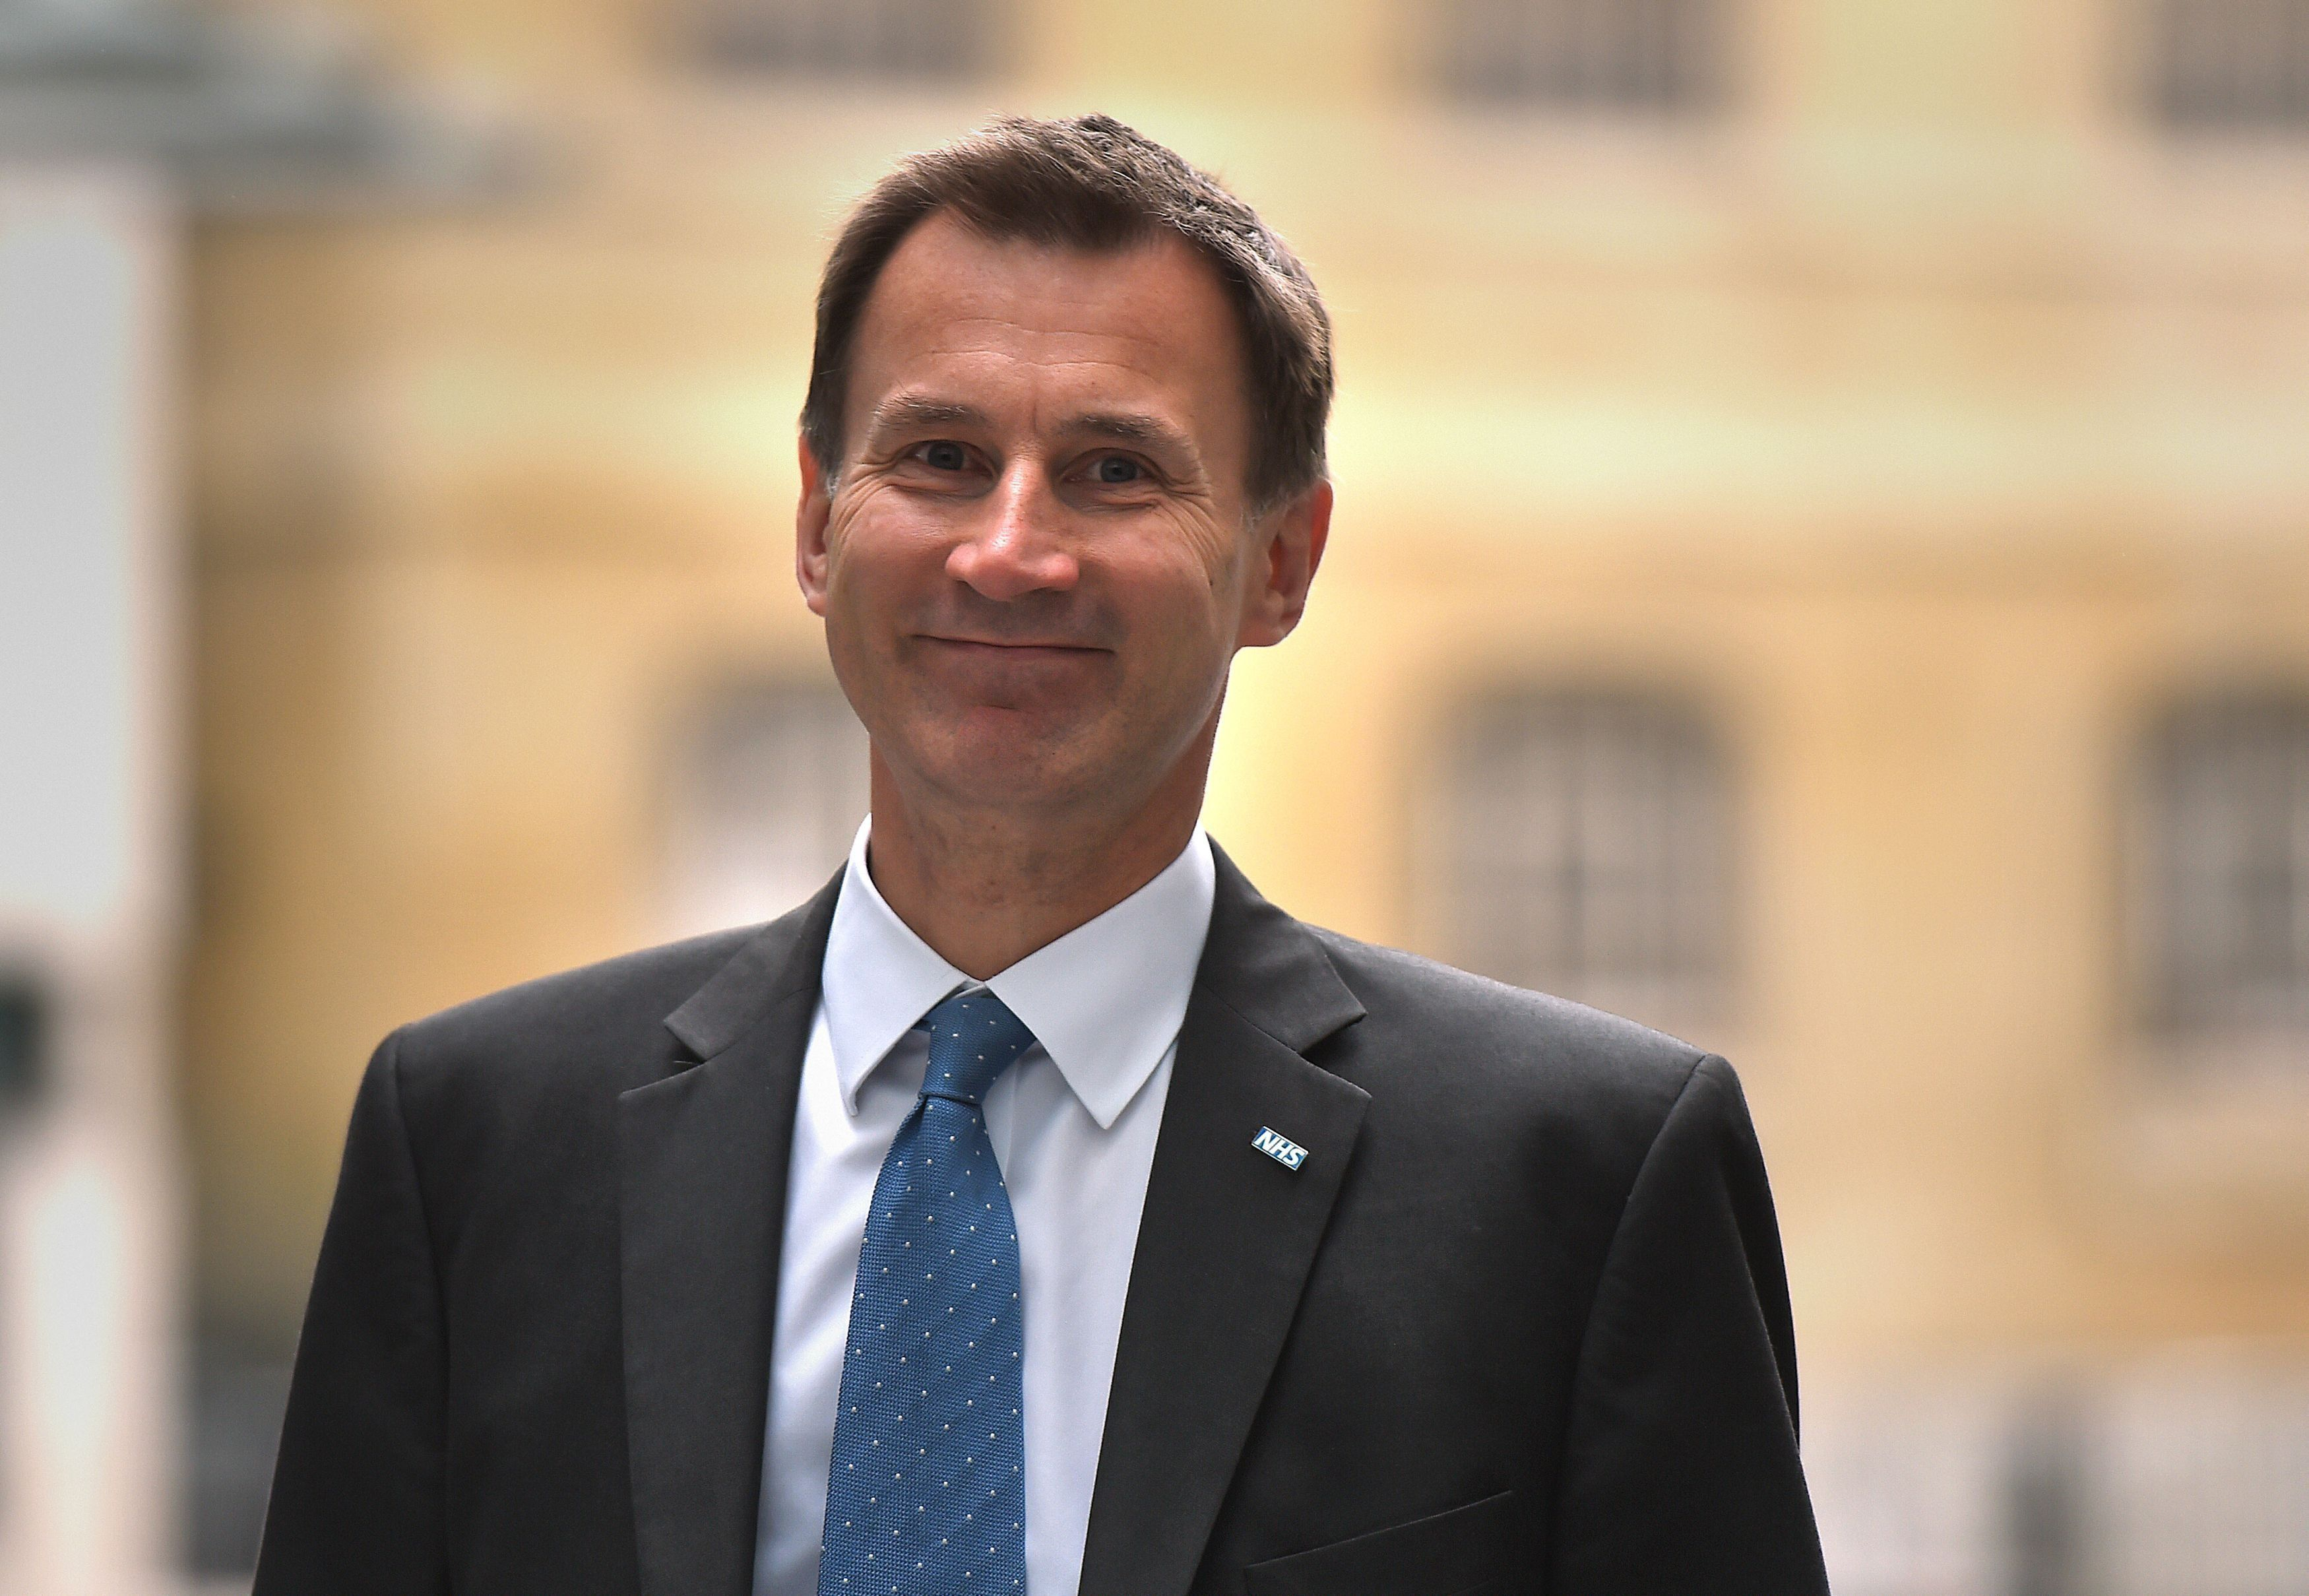 Health Secretary Jeremy Hunt has predicted NHS doctors could be replaced by robots which candiagnose